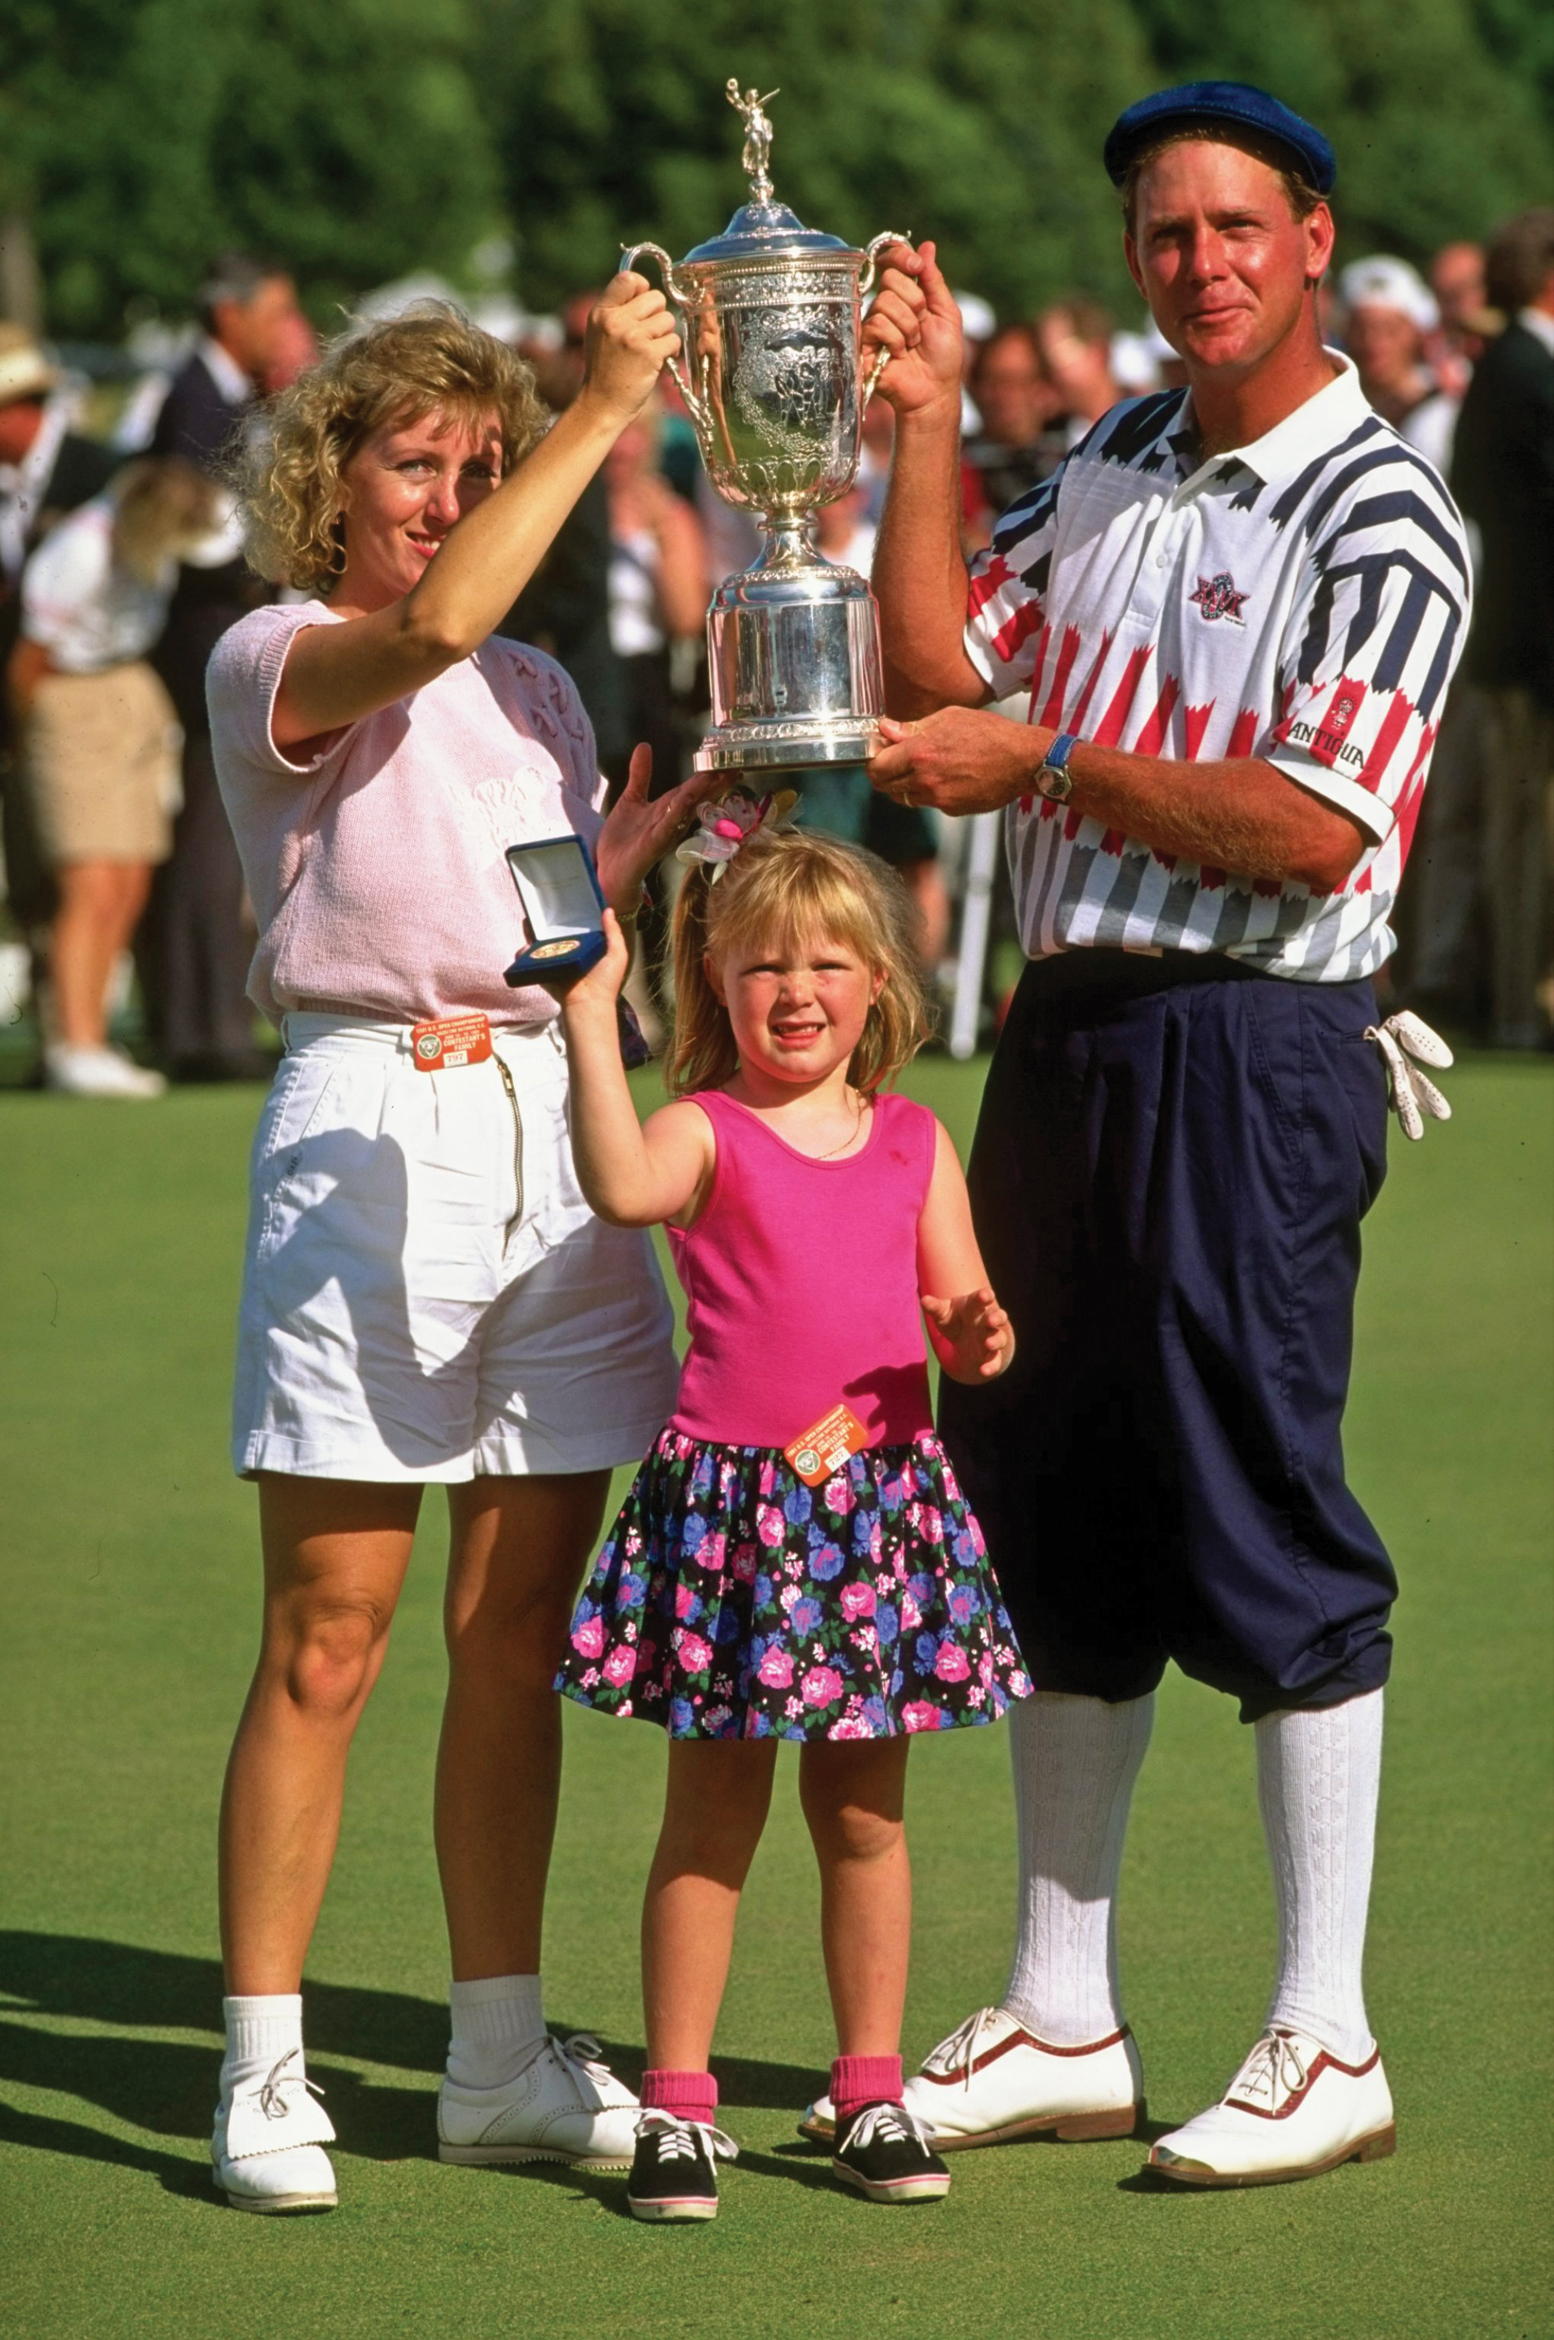 The Stewarts – Tracey, Payne and 5-year-old Chelsea – with the 1991 U.S. Open trophy.